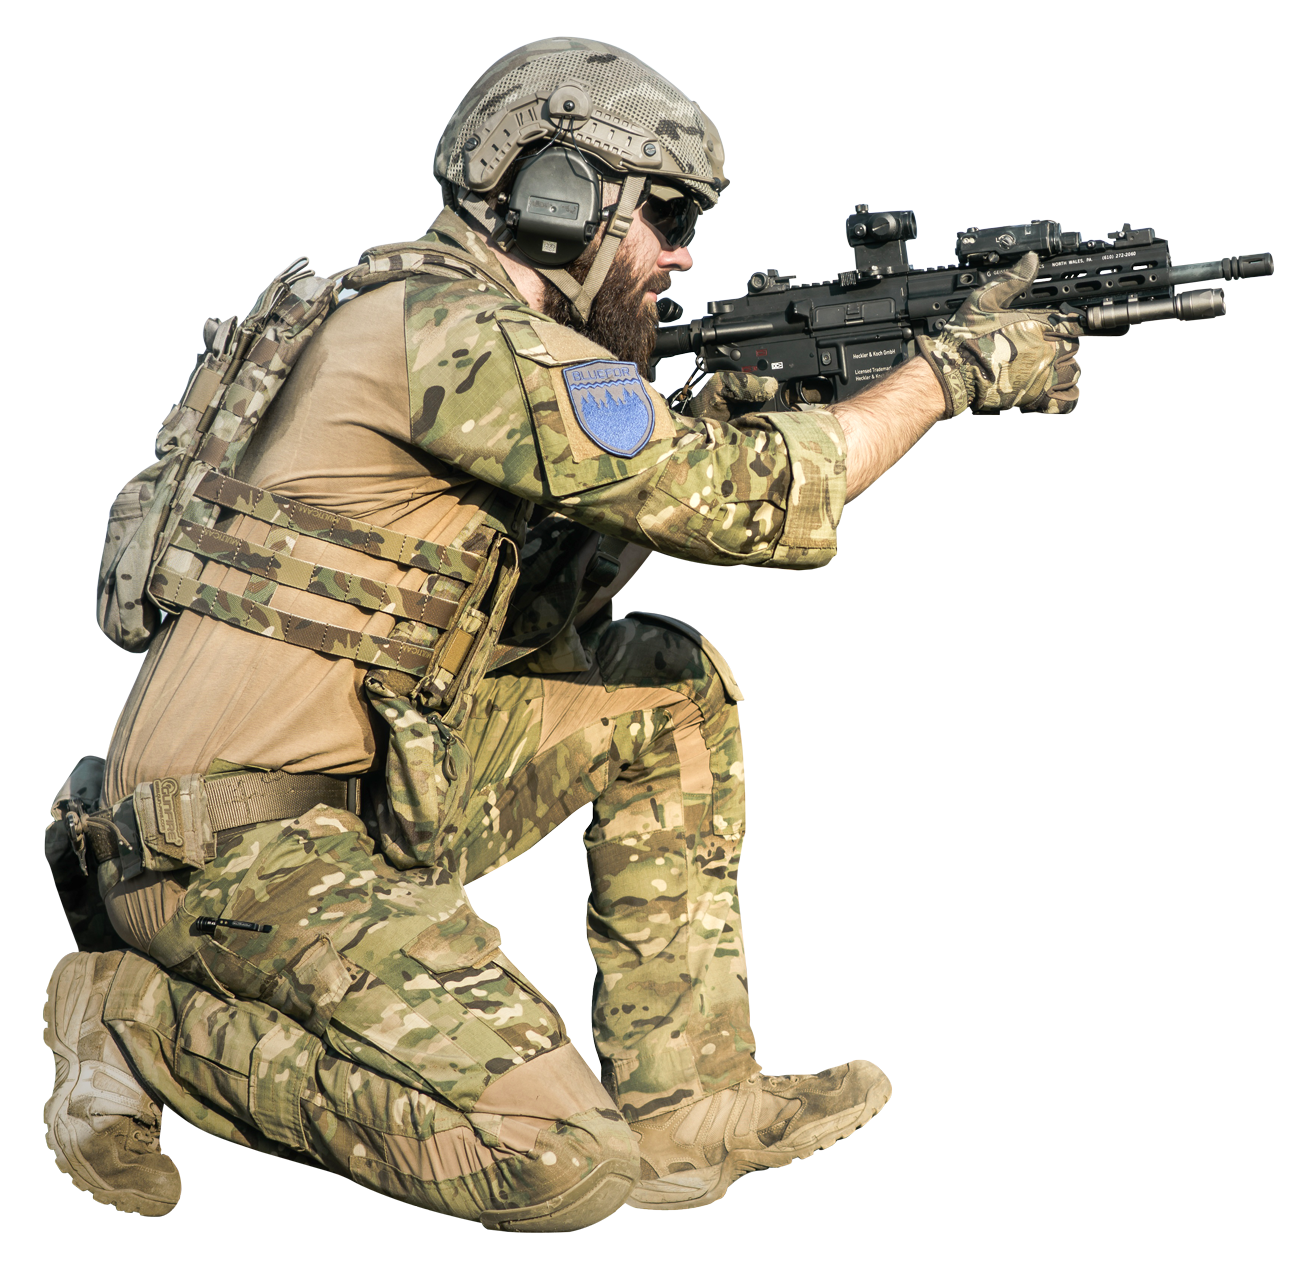 Png Military Soldier - Soldier Png Hd, Transparent background PNG HD thumbnail